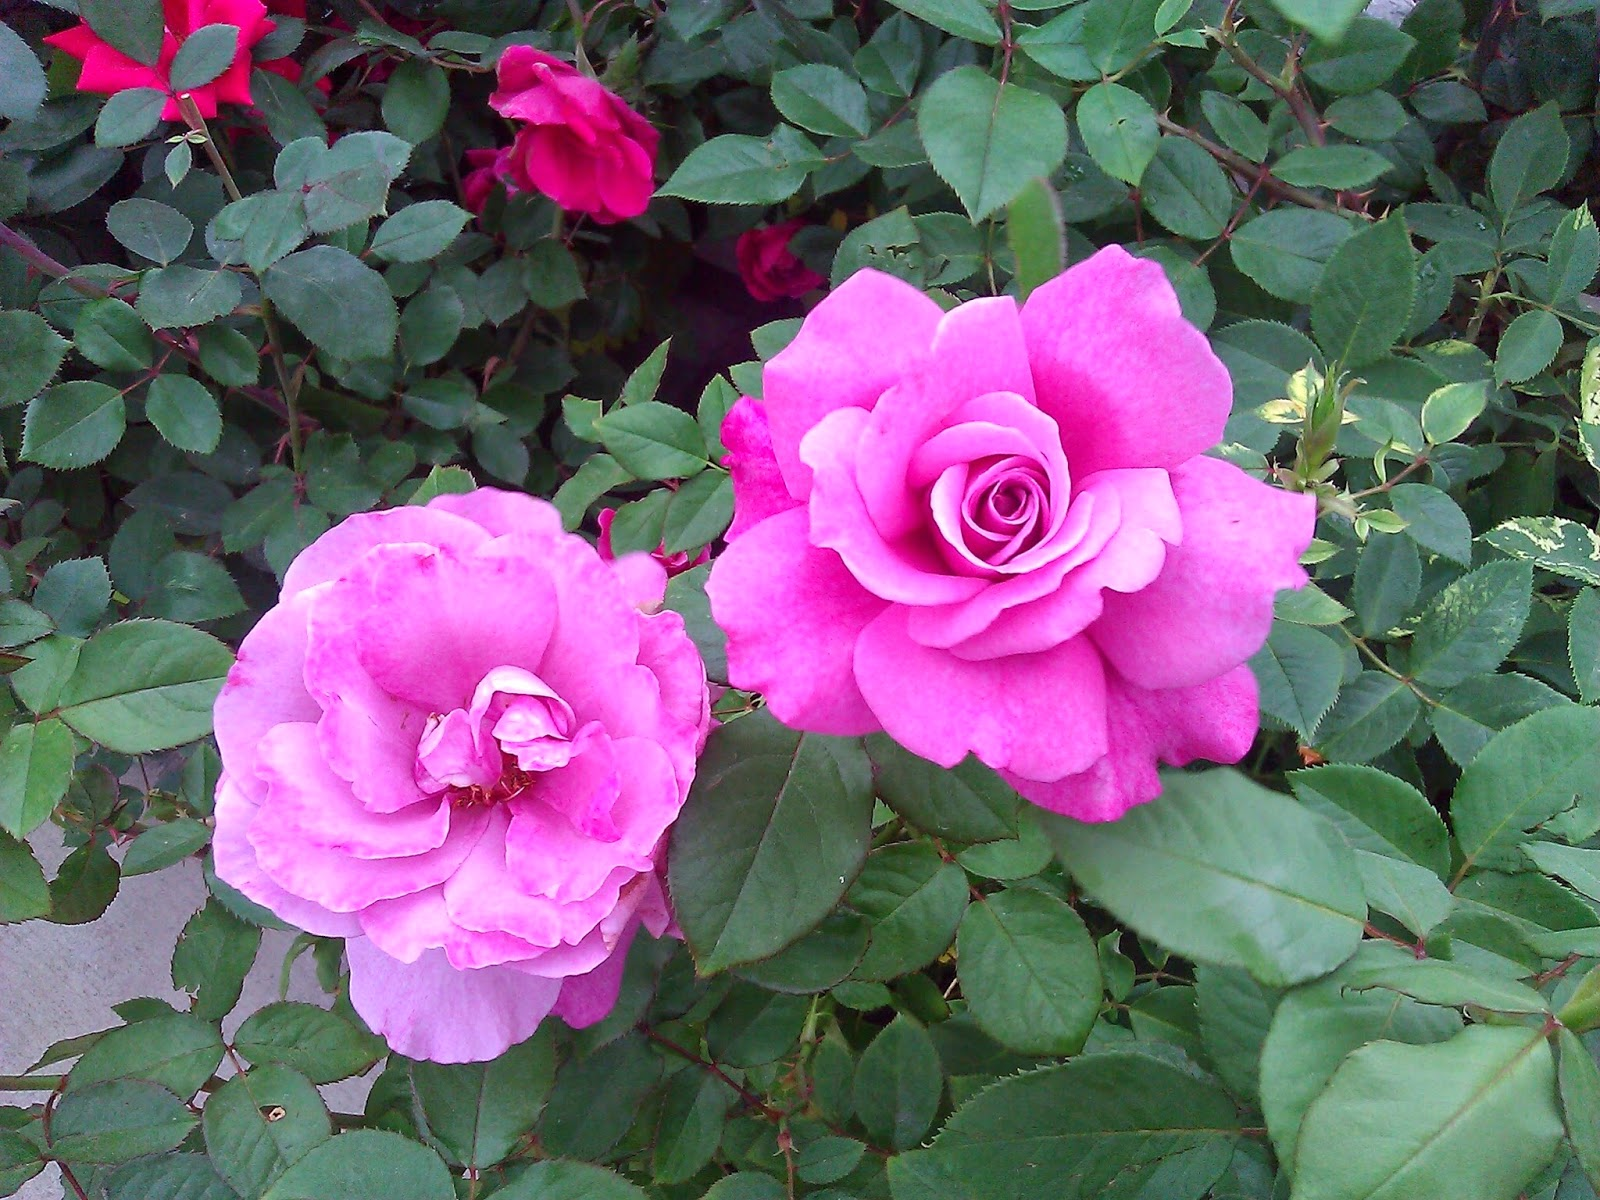 Two bright pink roses.